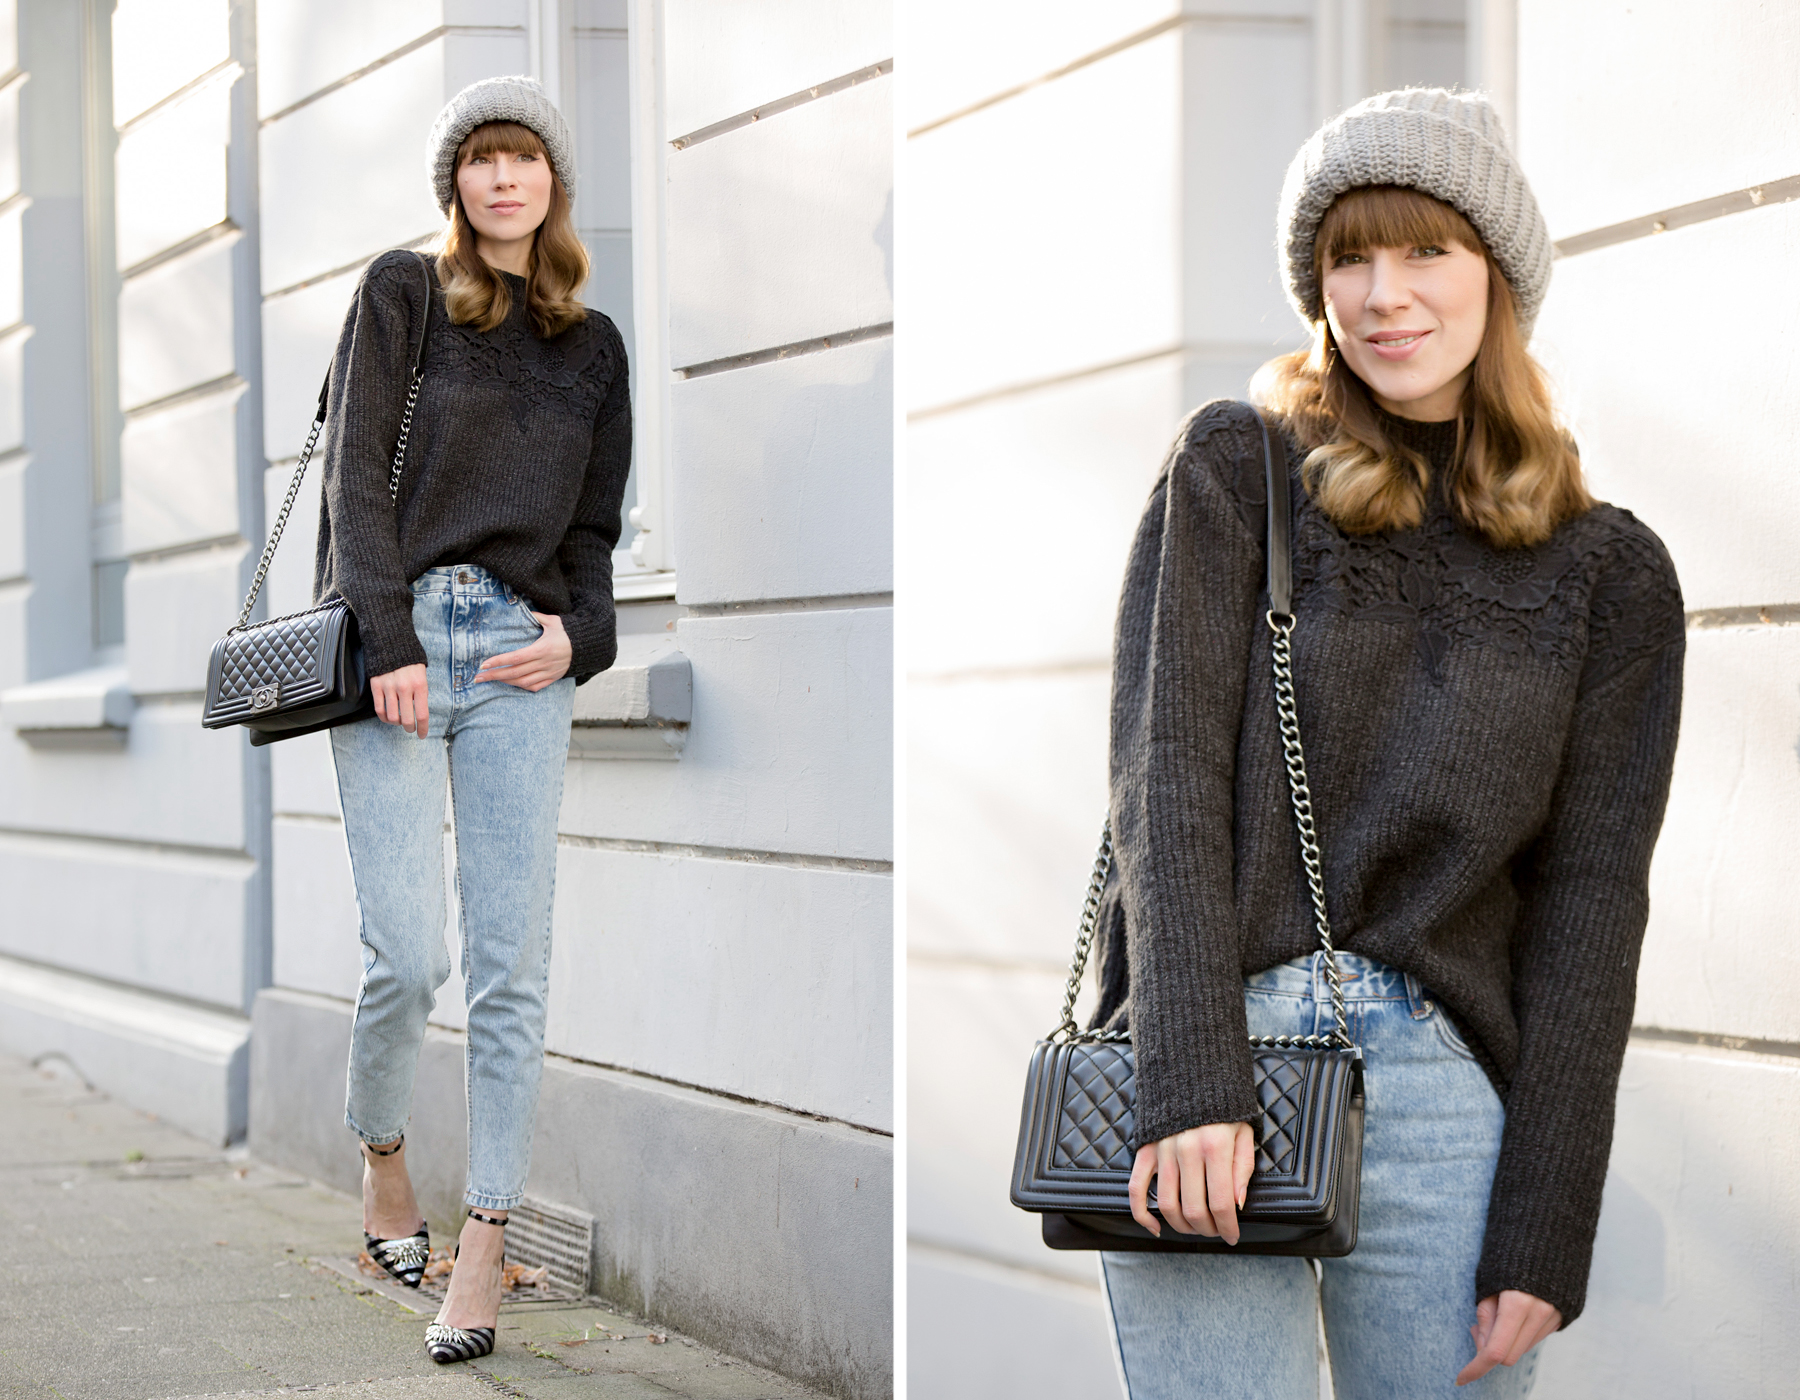 ootd outfit styling mom jeans momjeans pull&bear grey knit knitwear lace chanel chanel boybag leboy asos striped high heels glamour look relax cozy winter düsseldorf cats & dogs blog ricarda schernus fashionblogger 3